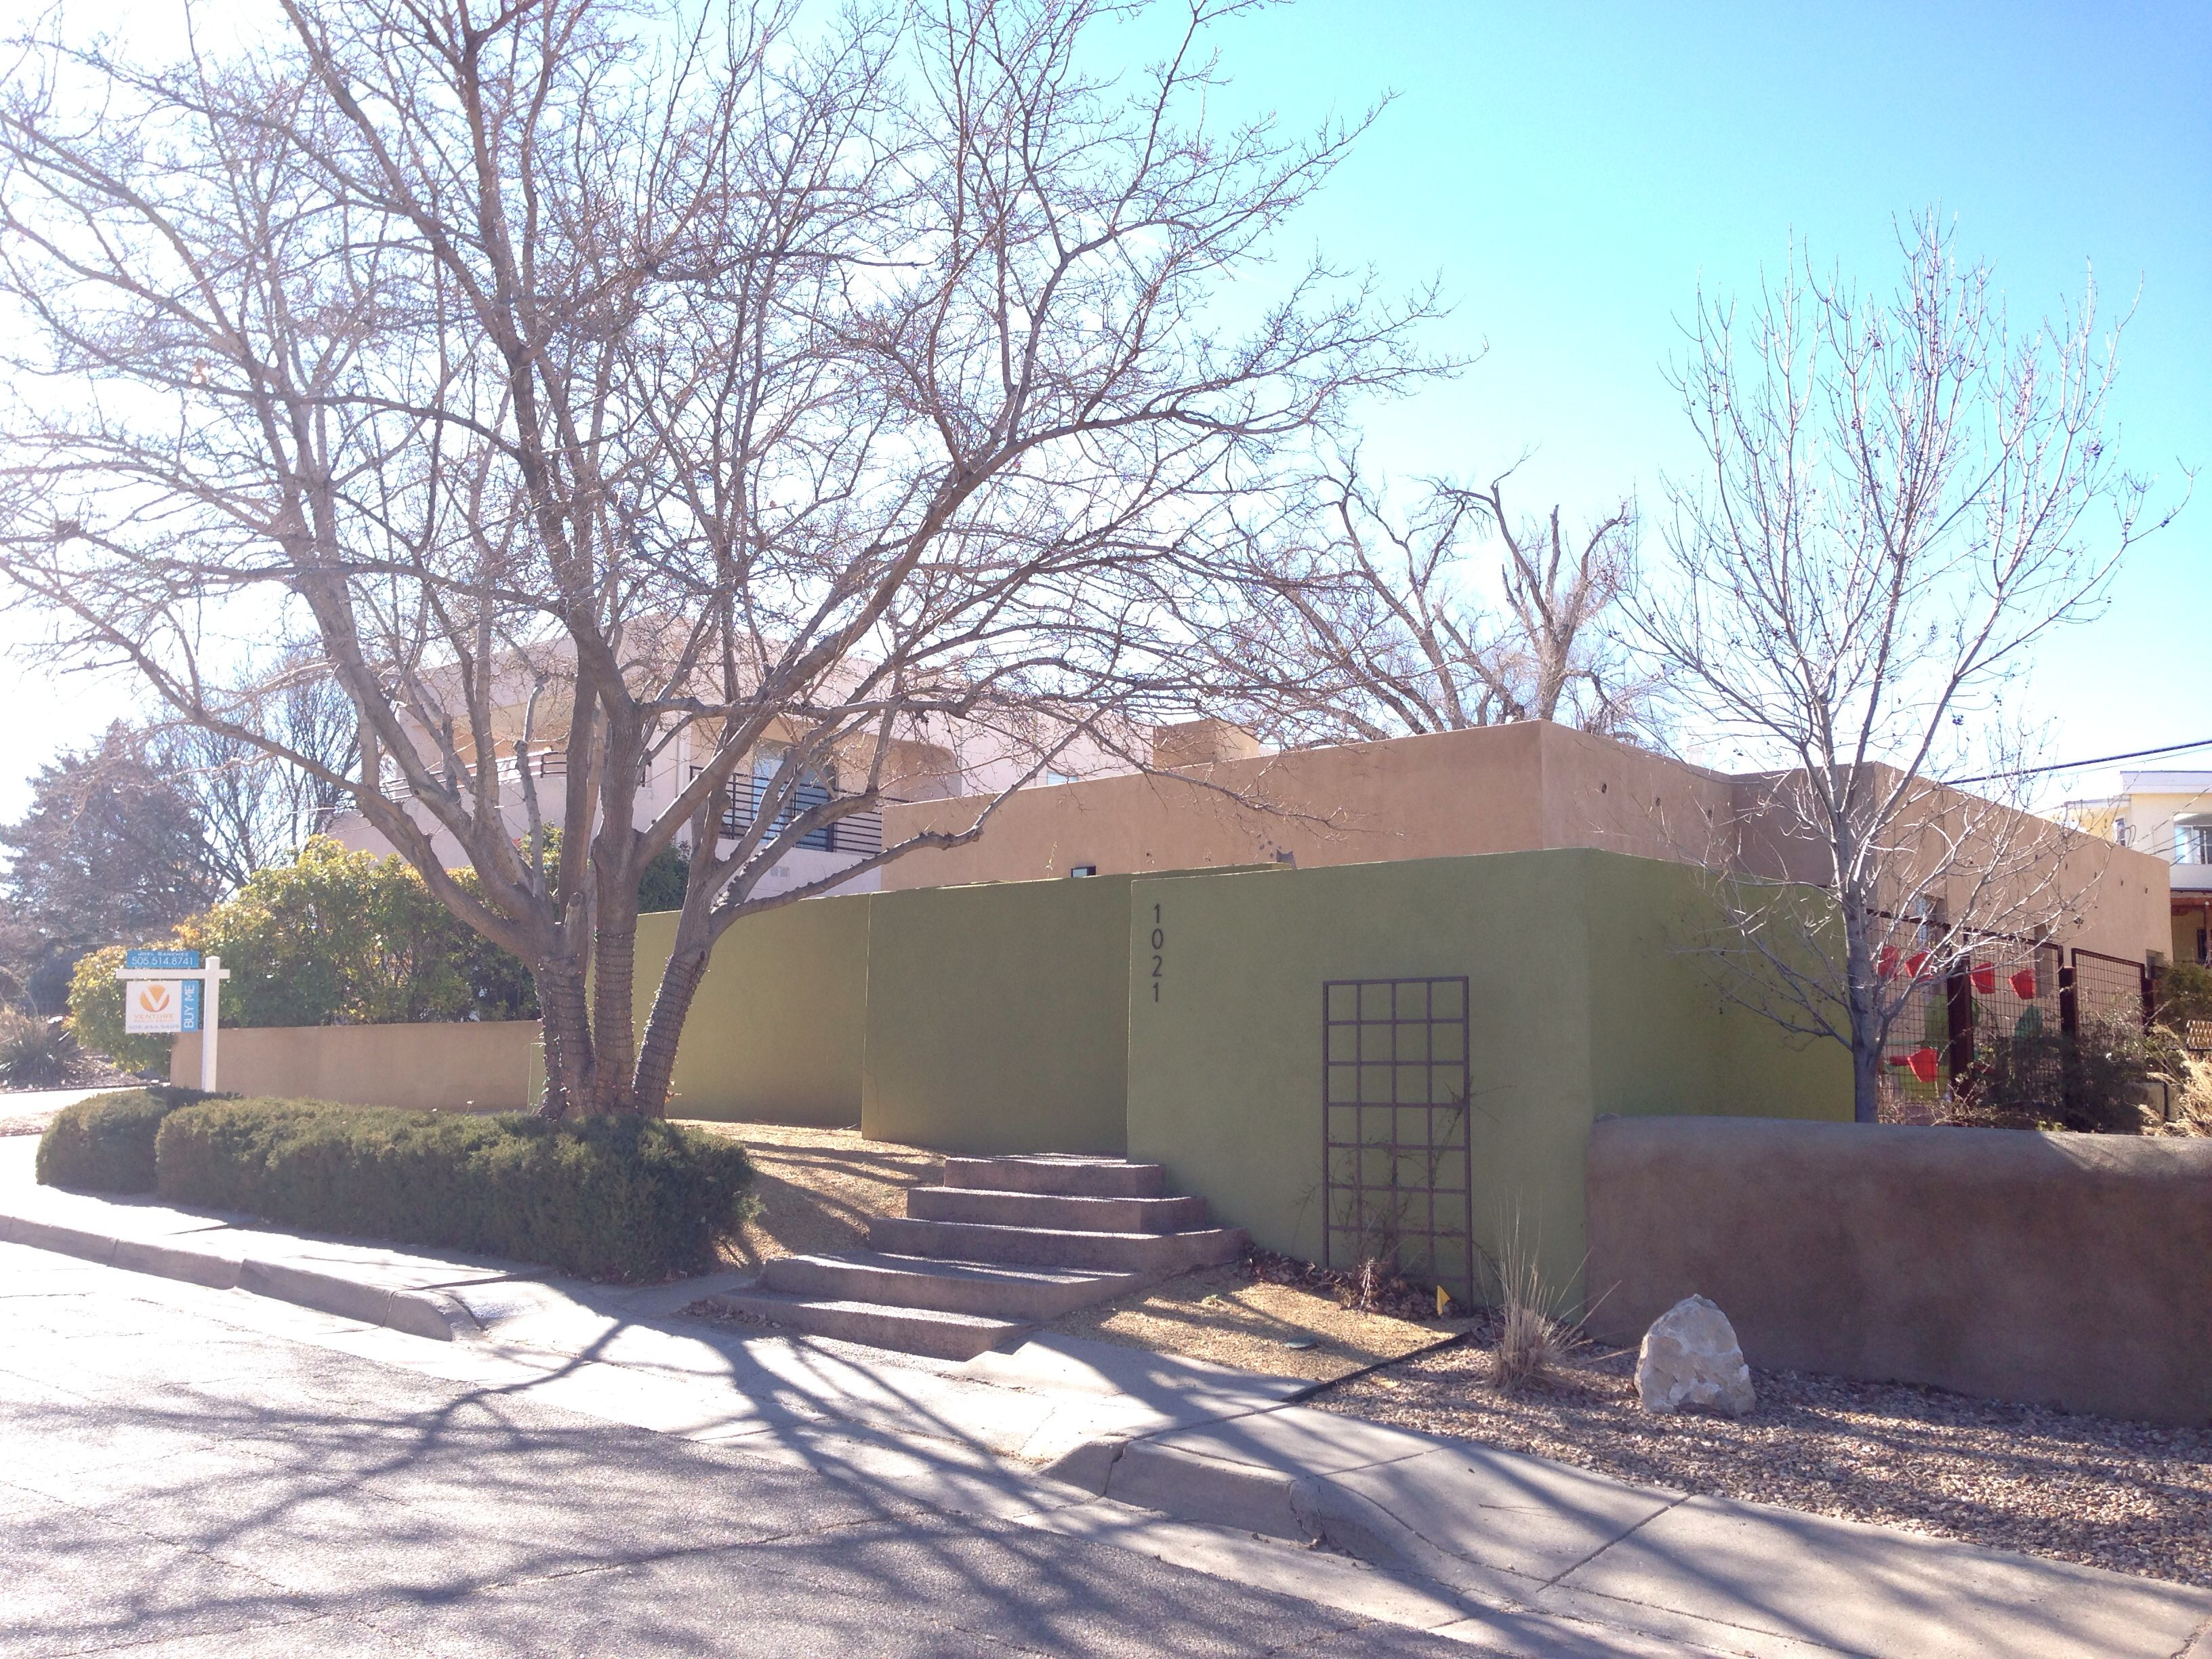 1021 Adams Se Albuquerque Nm Ridgecrest Dream Home Nob Hill